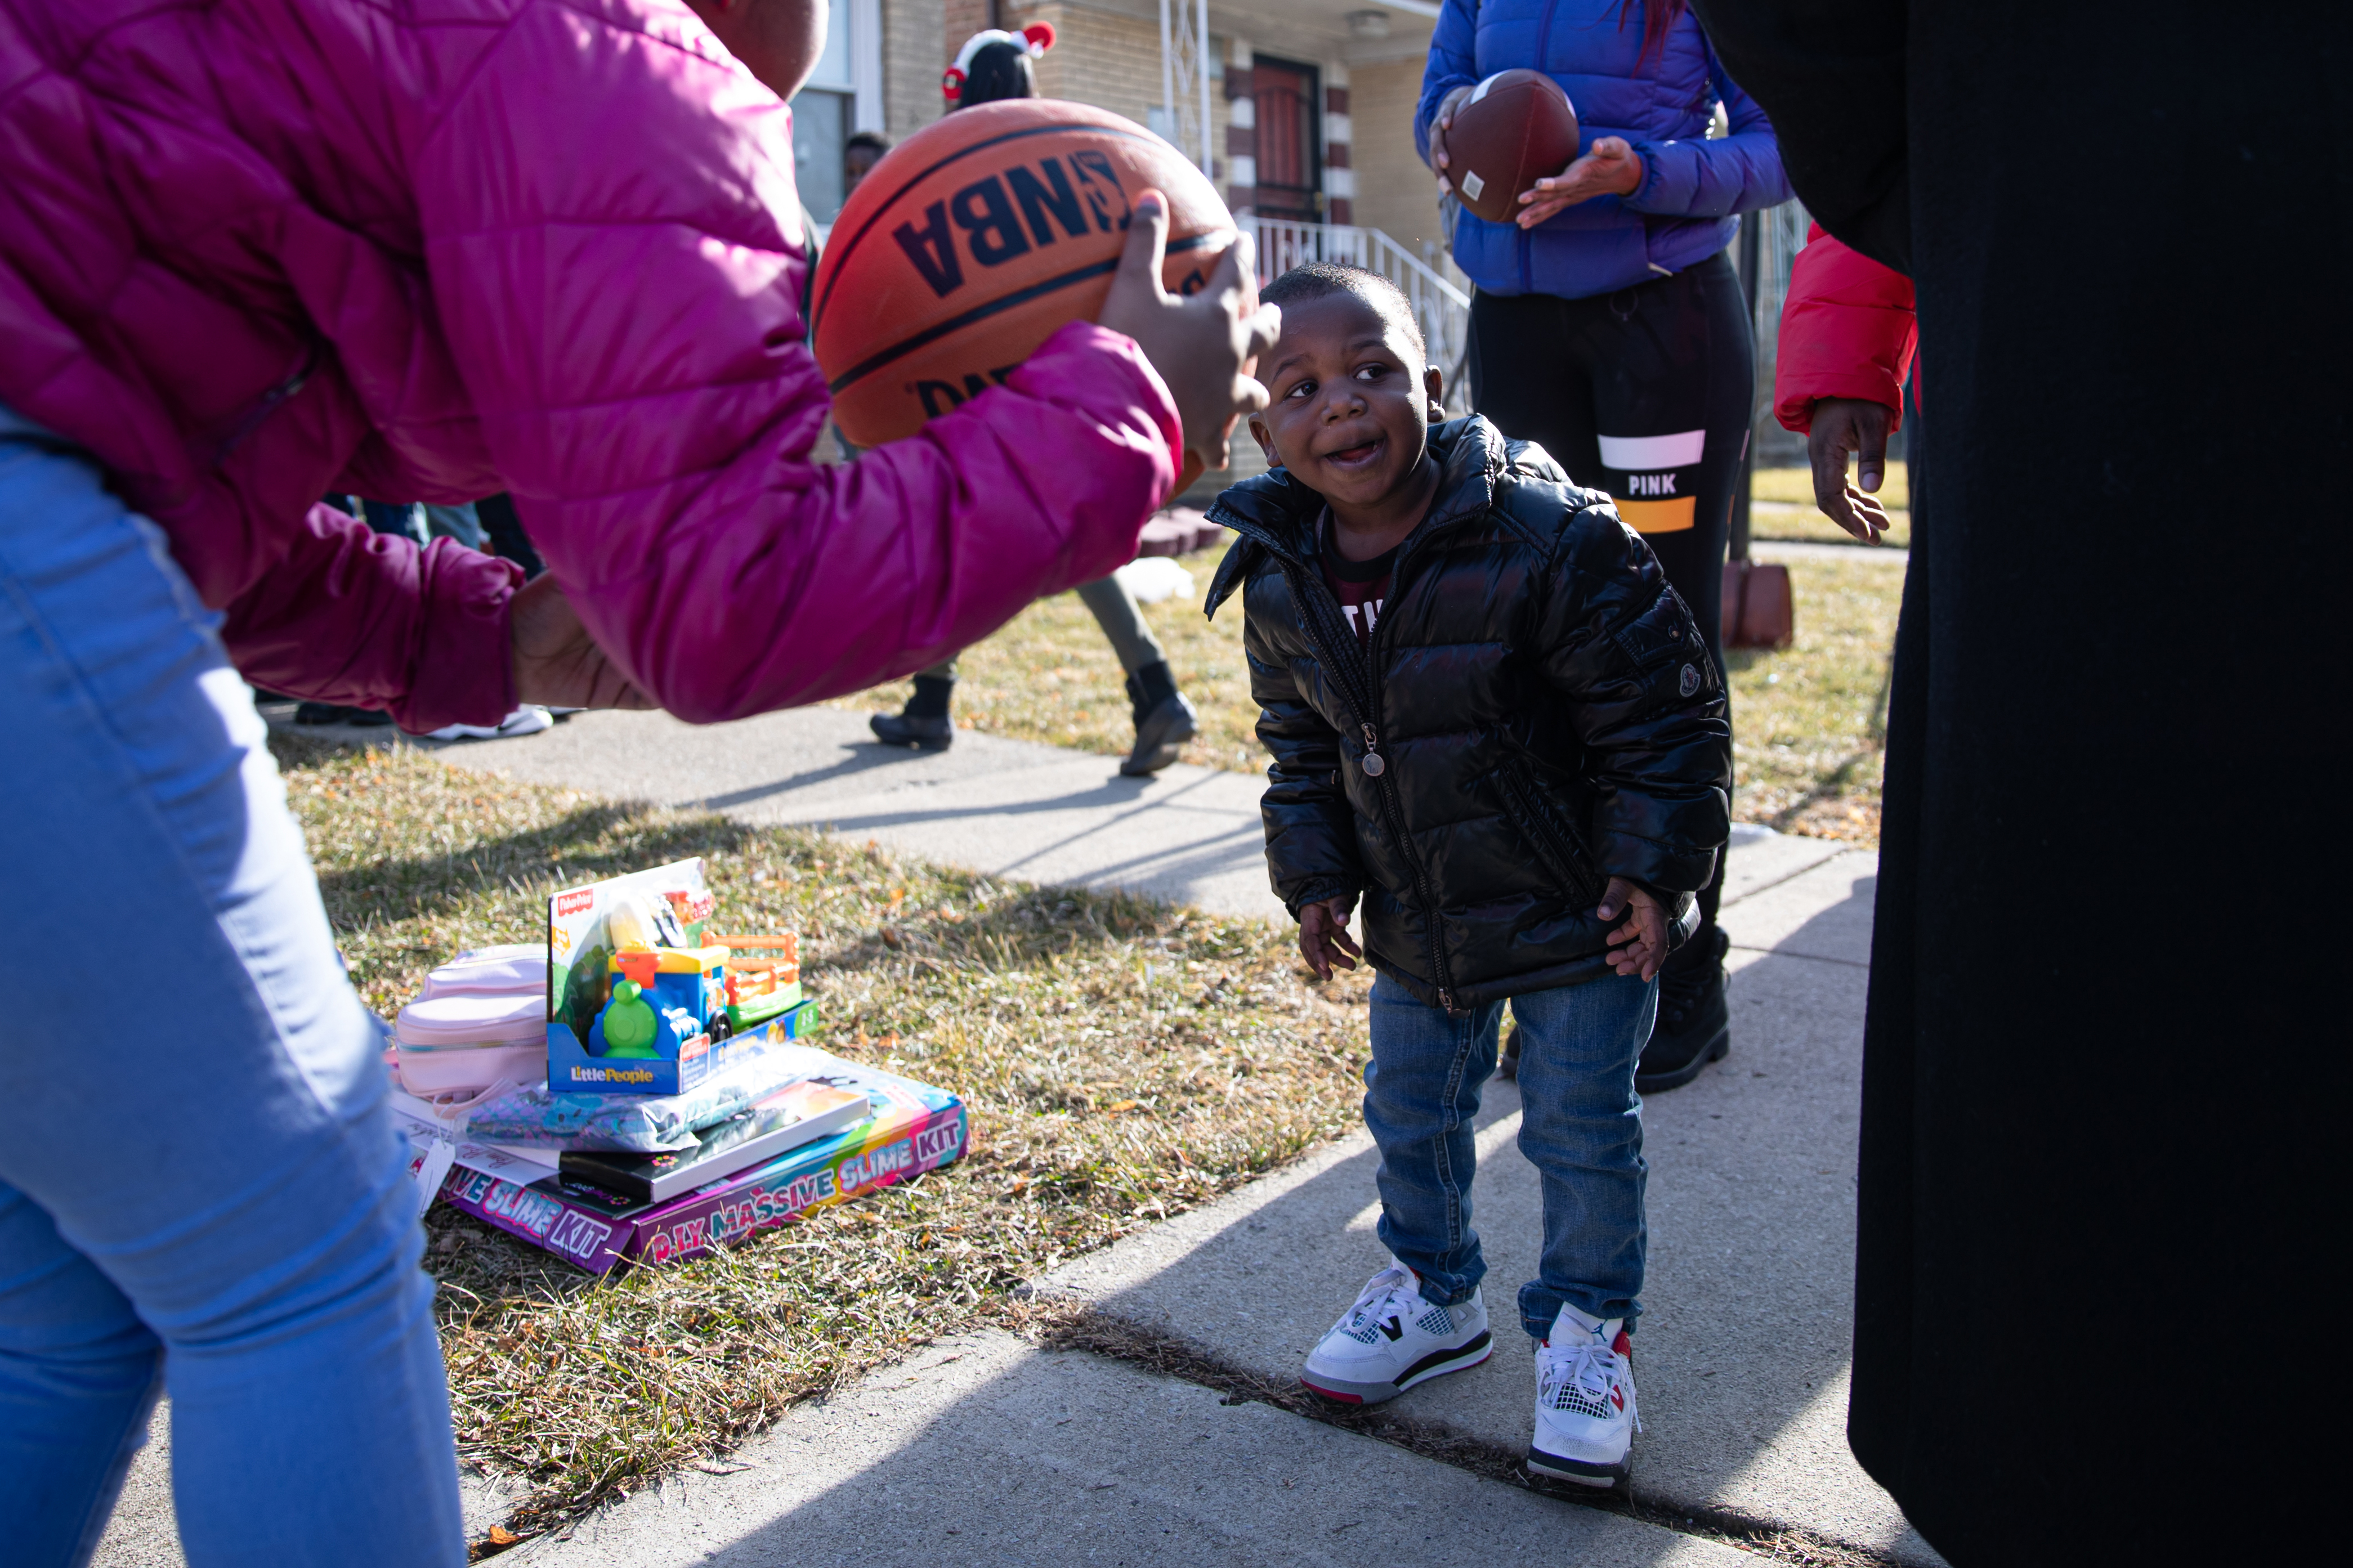 Gregory Martin reacts to Santa and presents during a Christmas Eve event to surprise the children of two mothers shot to death while working as peacemakers in Chicago.